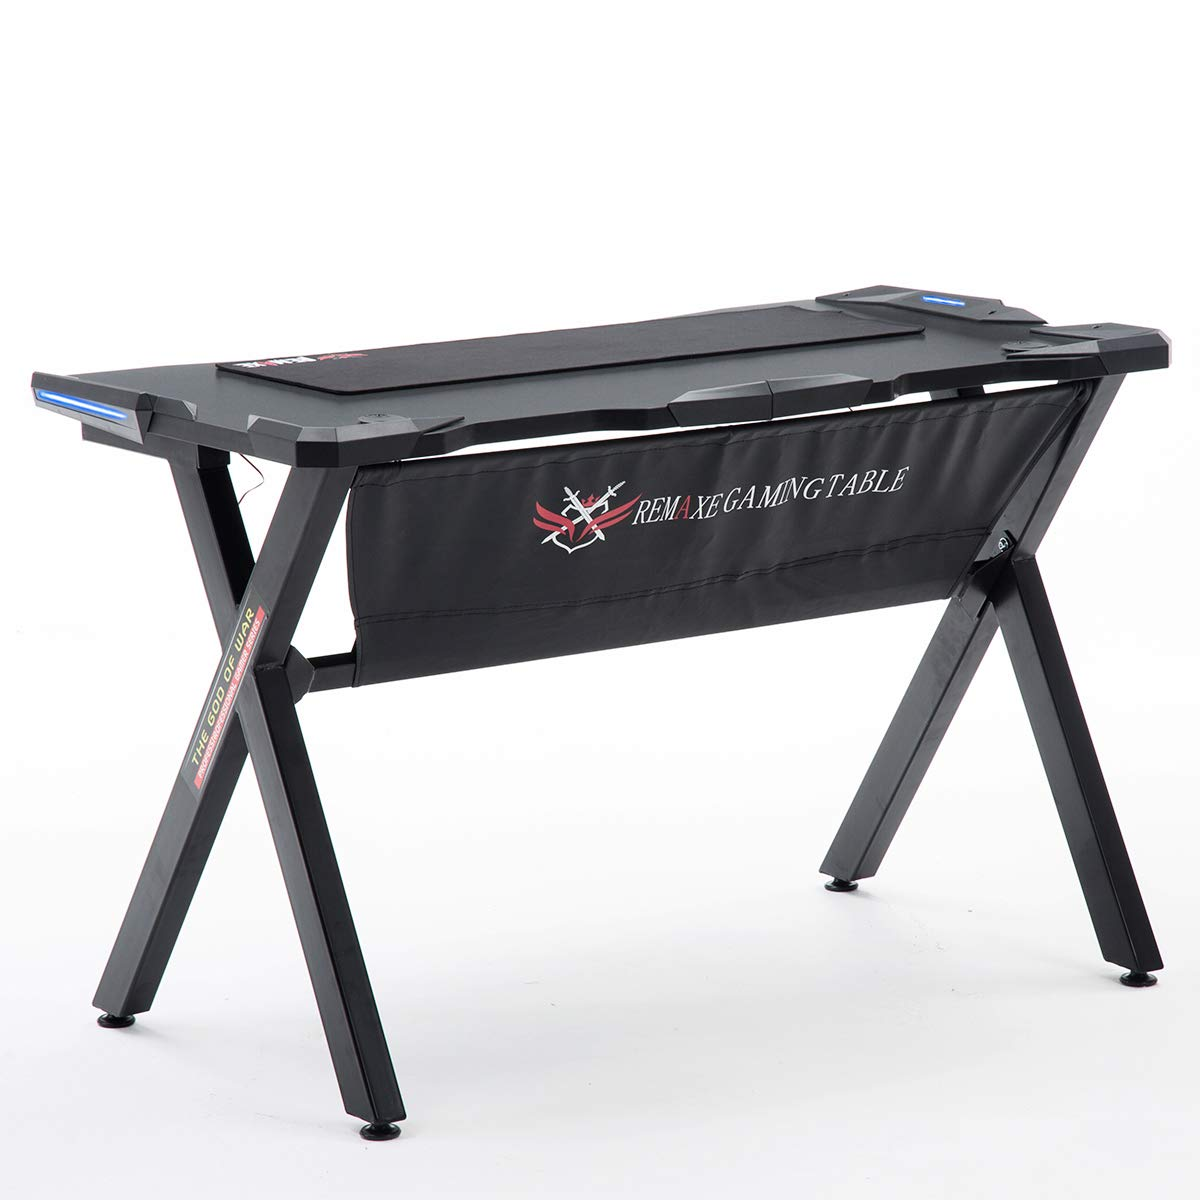 Remaxe Gaming Table Black BDRX-03